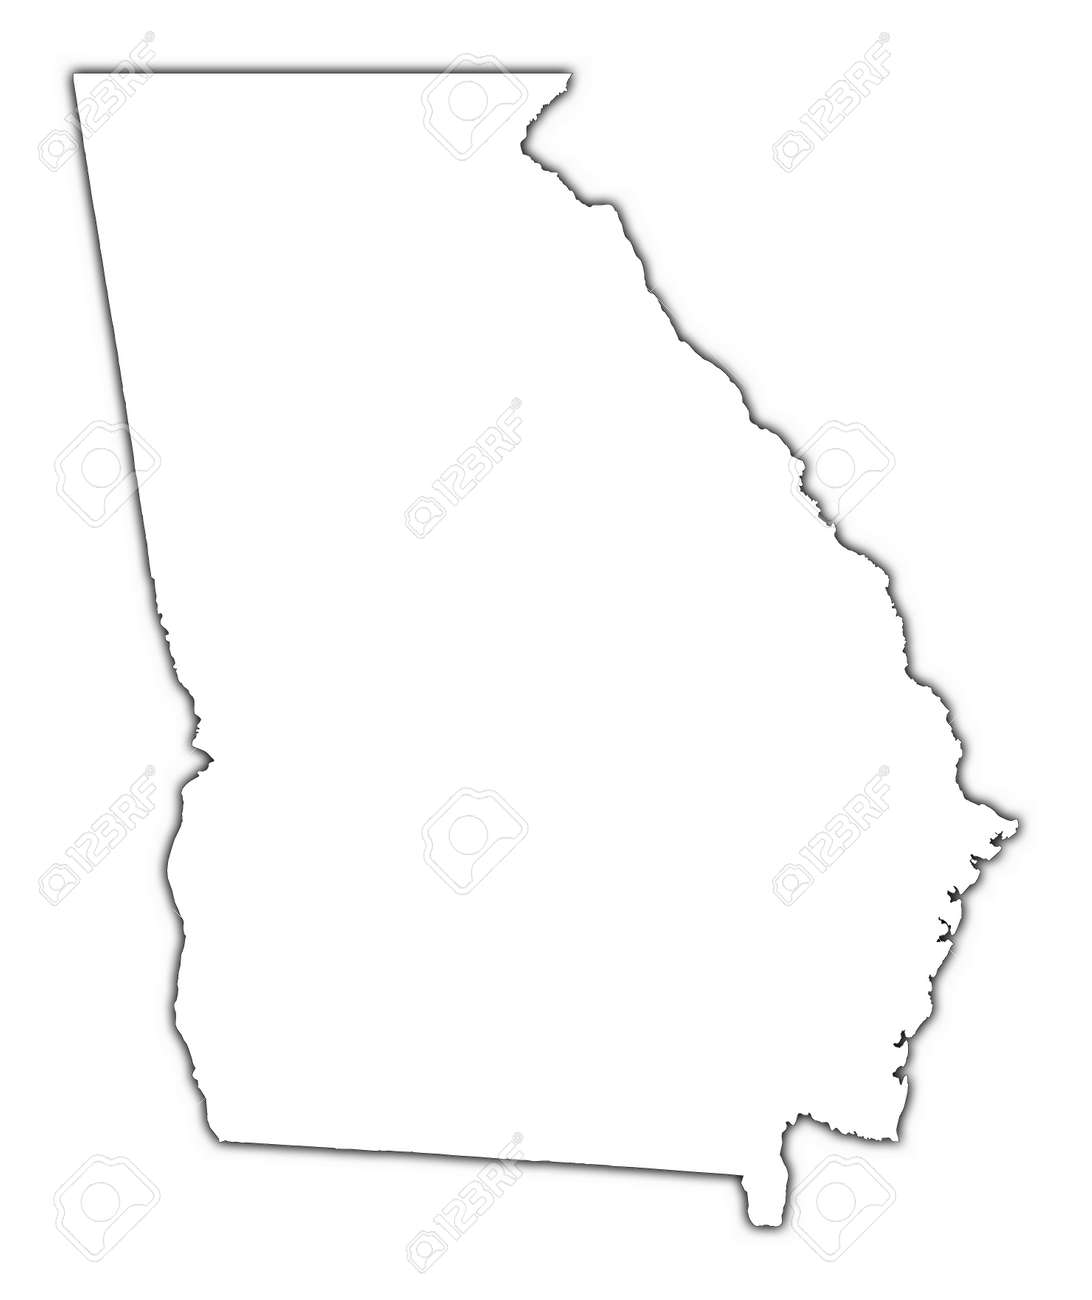 Outline Of Georgia Map.Georgia Usa Outline Map With Shadow Detailed Mercator Projection